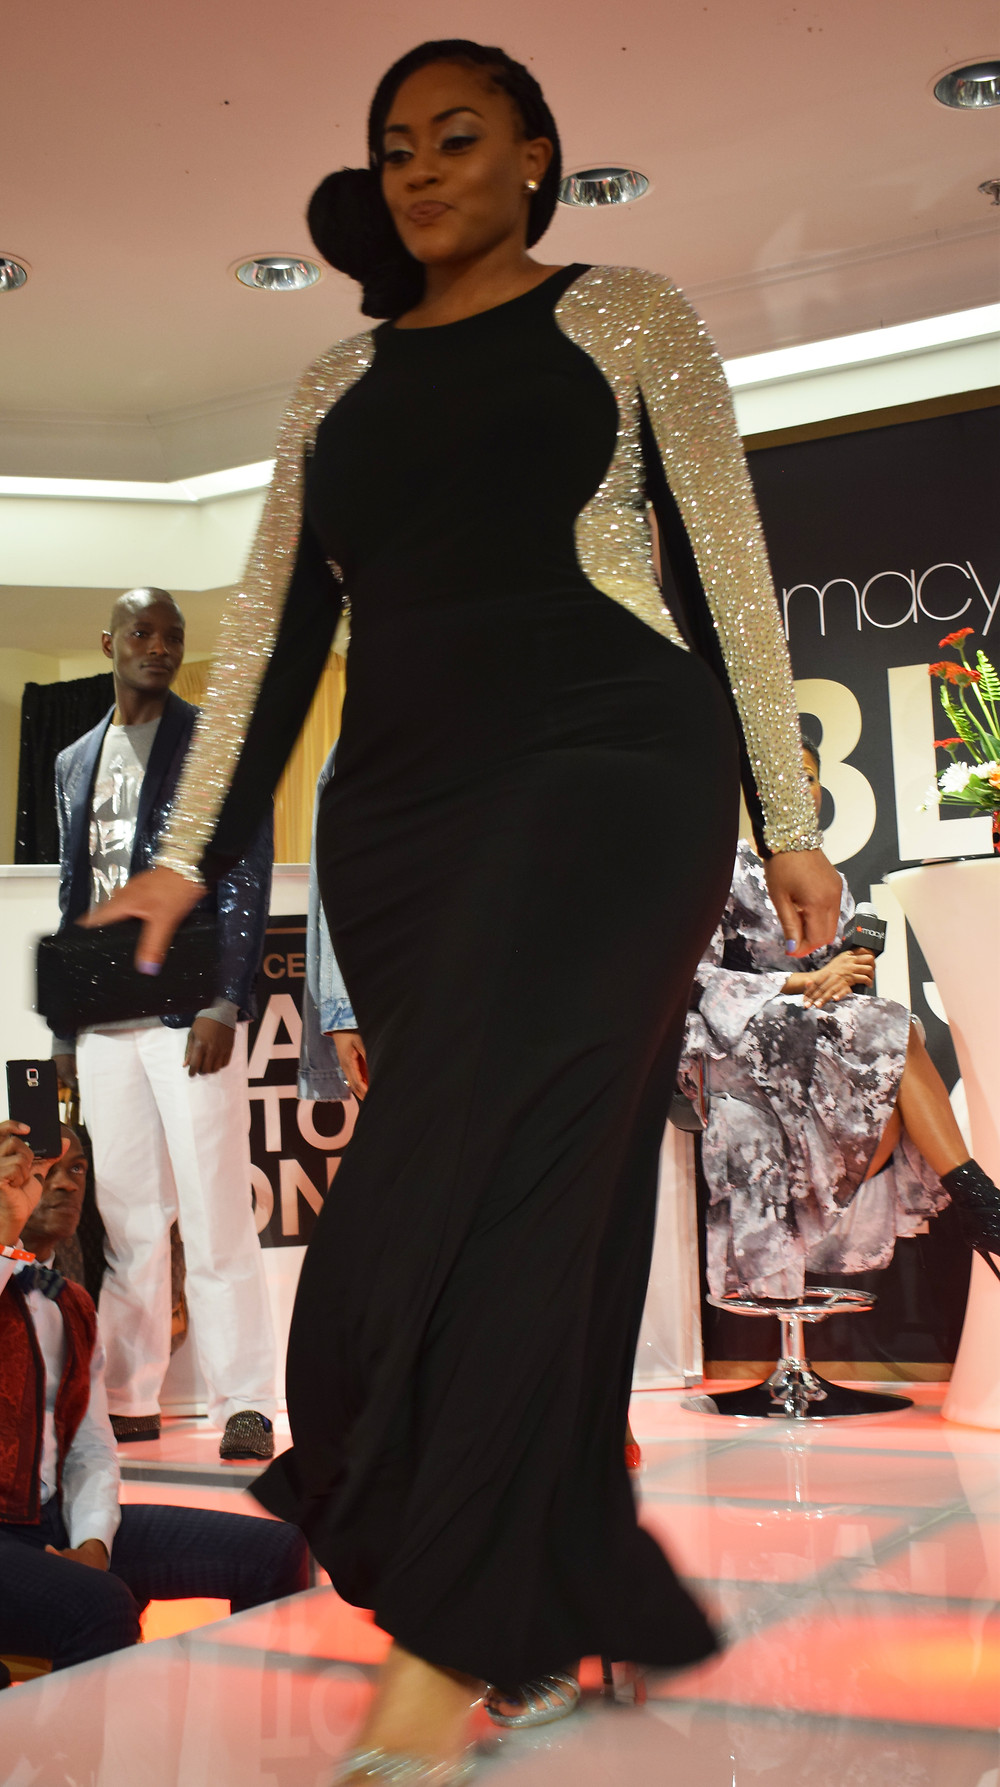 Macy's Black History Month Celebration in Atlanta at Lenox Mall; Izzy Marie Fashion Inspired by Michelle Obama